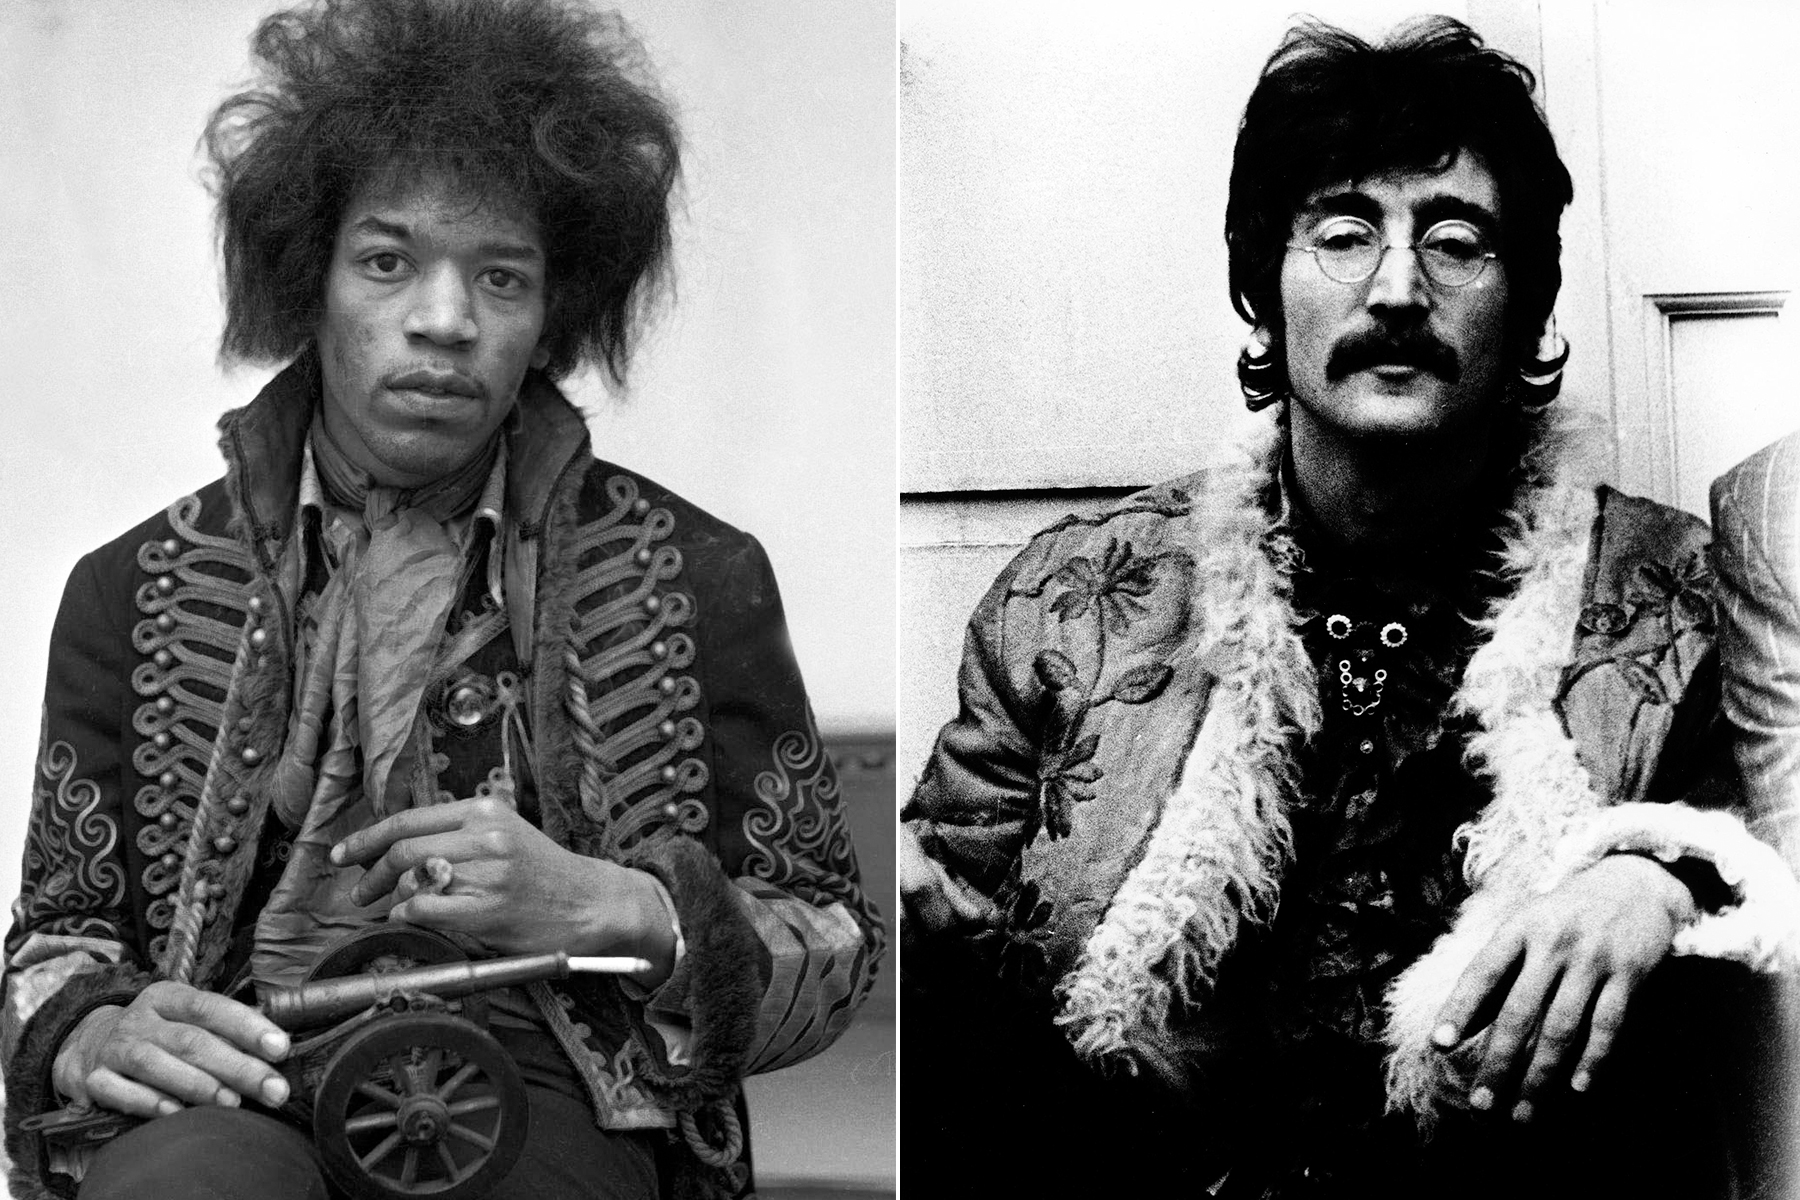 Jimi Hendrix, John Lennon, Jim Morrison to Appear on Postage Stamps